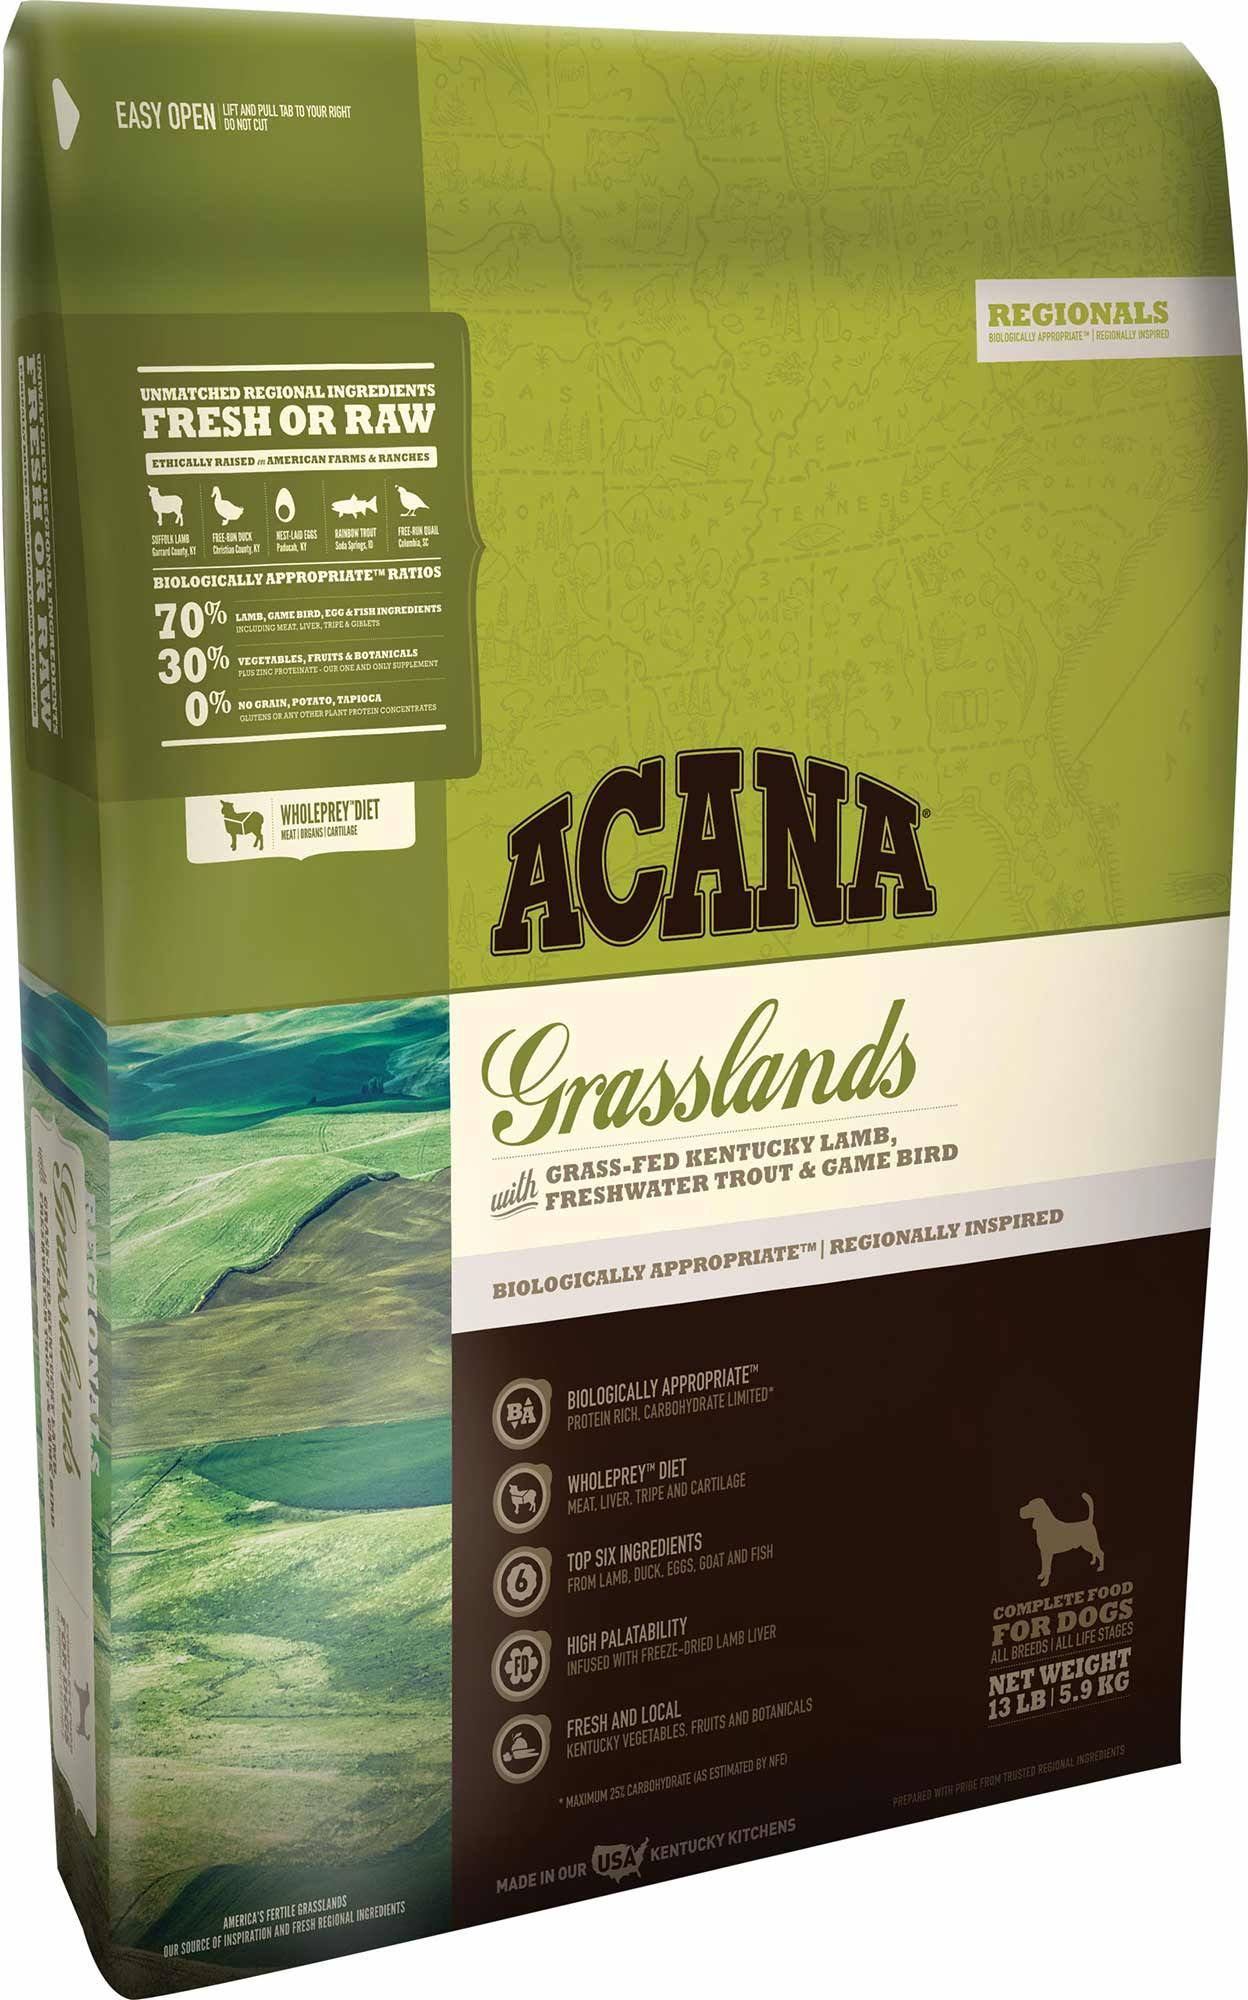 ACANA Regionals Grasslands Dry Dog Food, 4.5 lbs